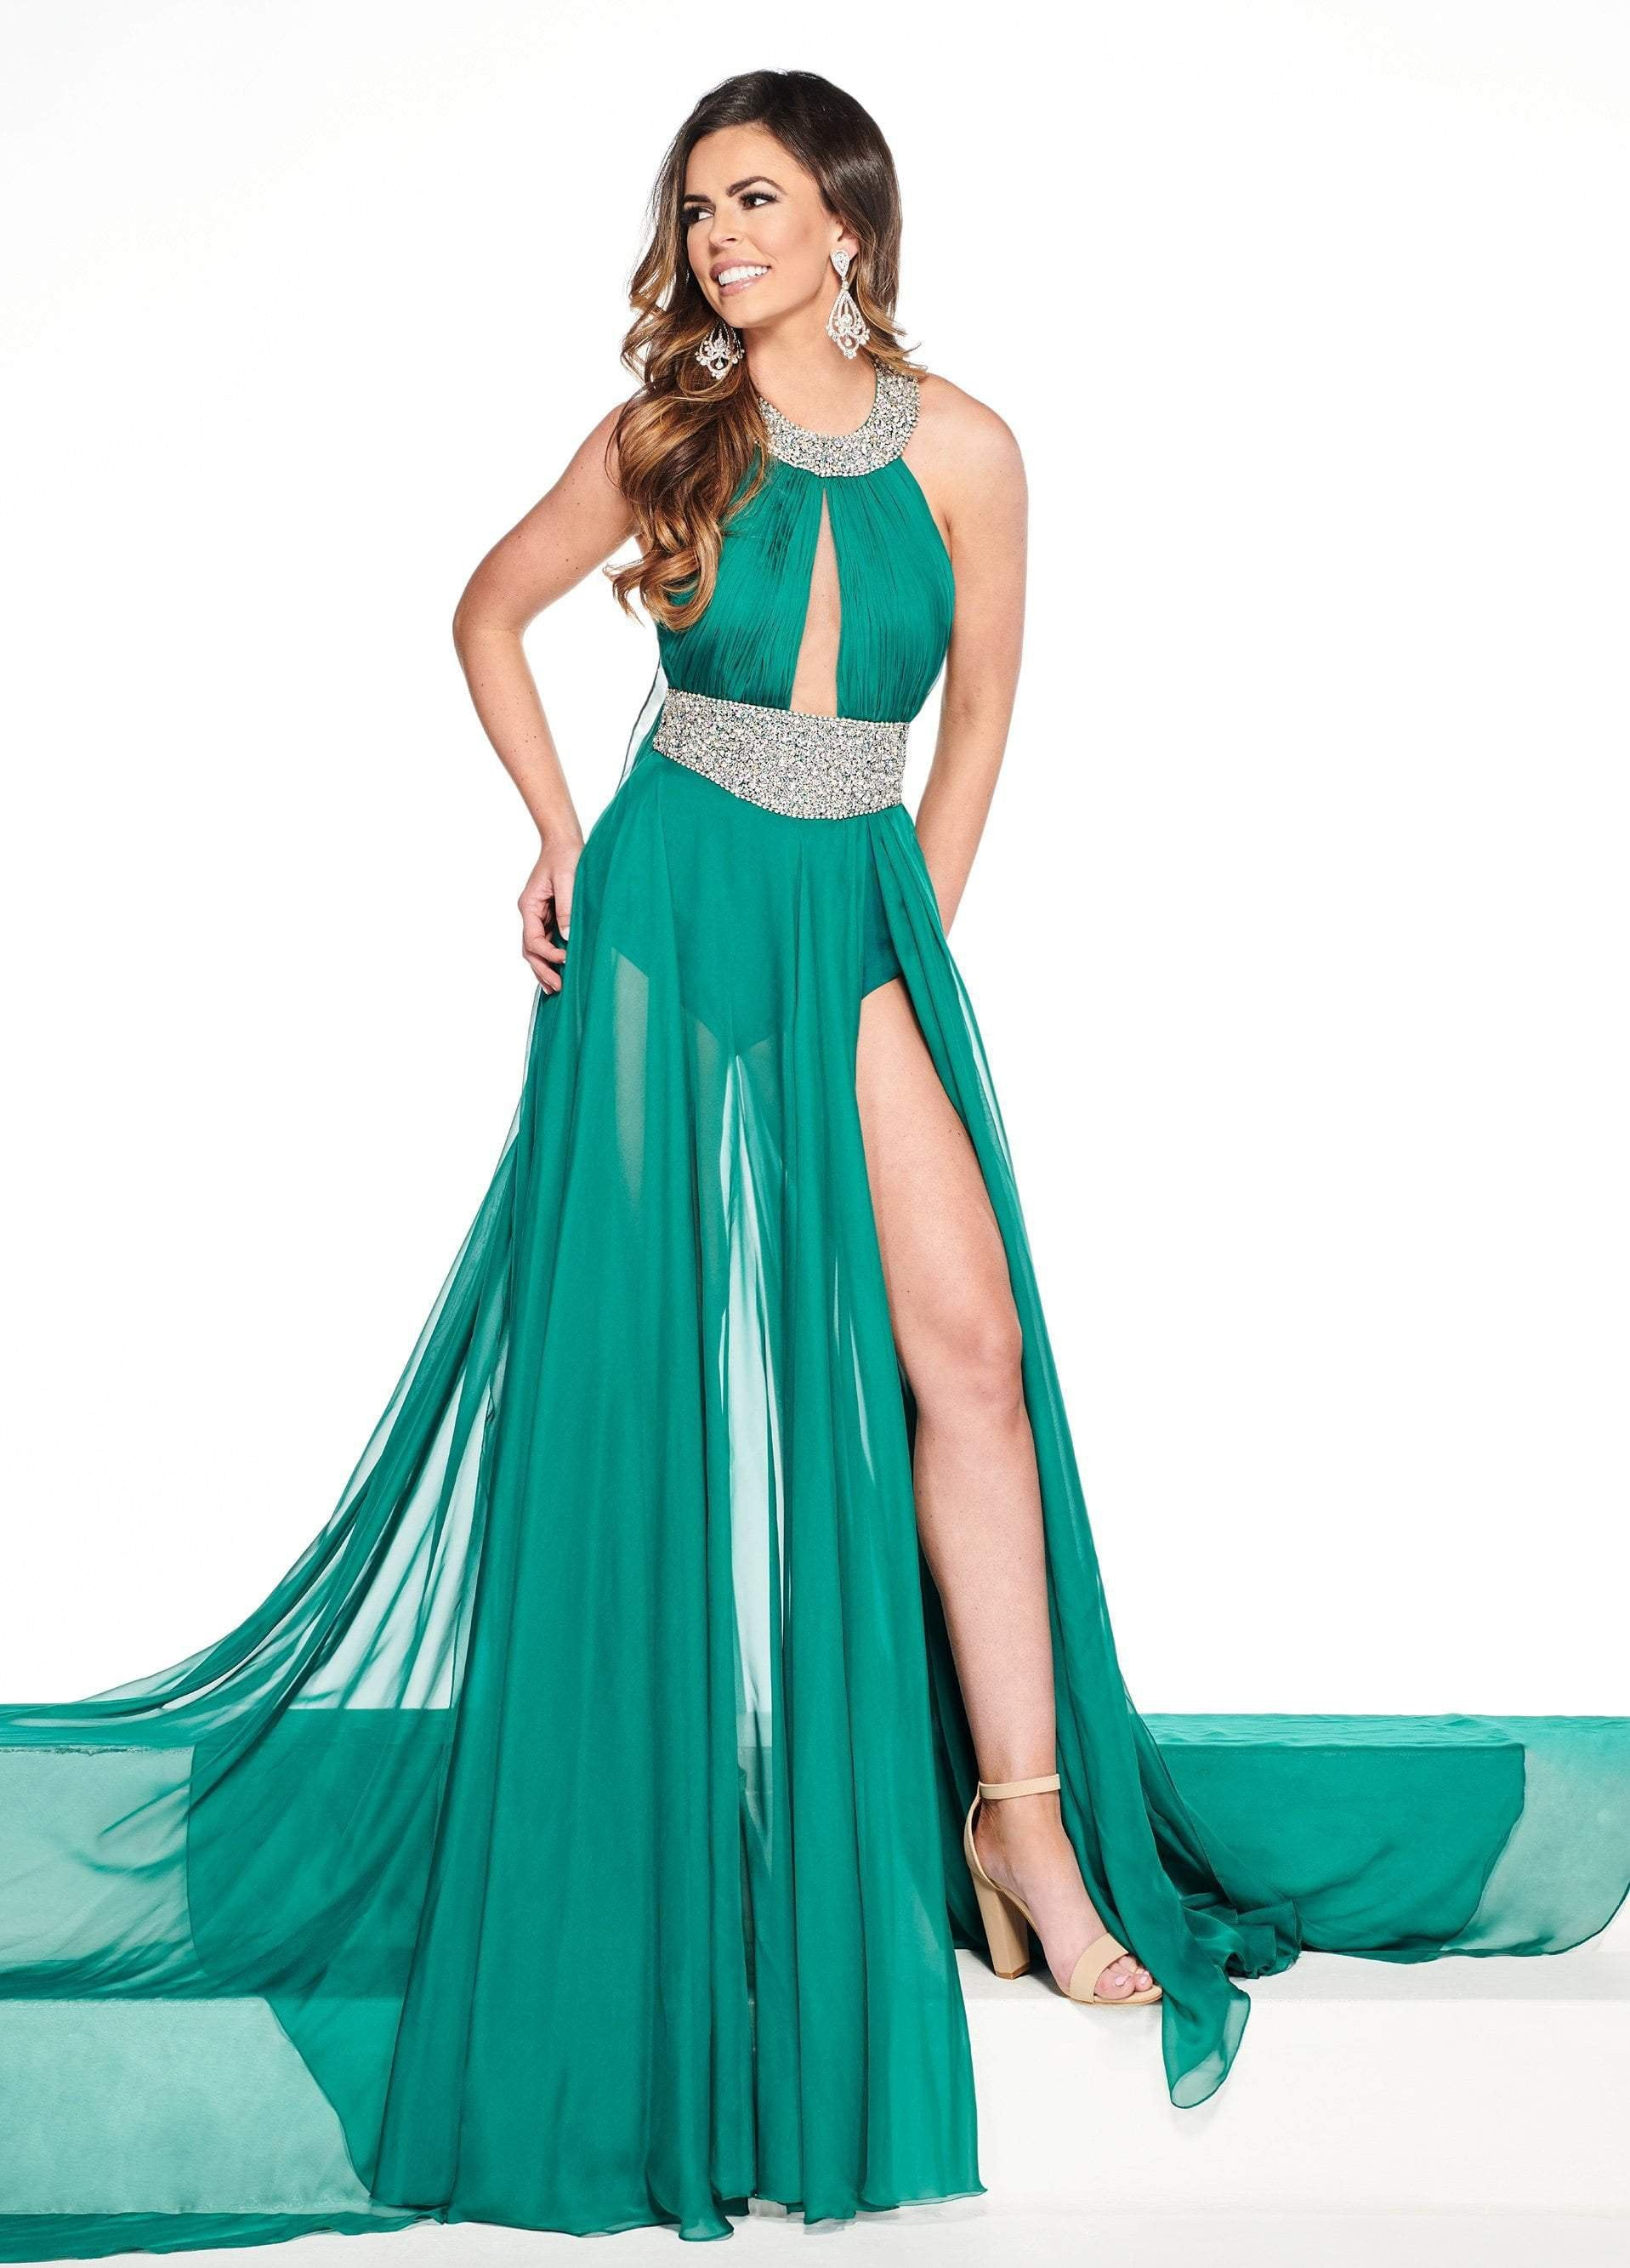 Rachel Allan Primadonna - 5090 Embellished Halter Chiffon A-line Dress In Green